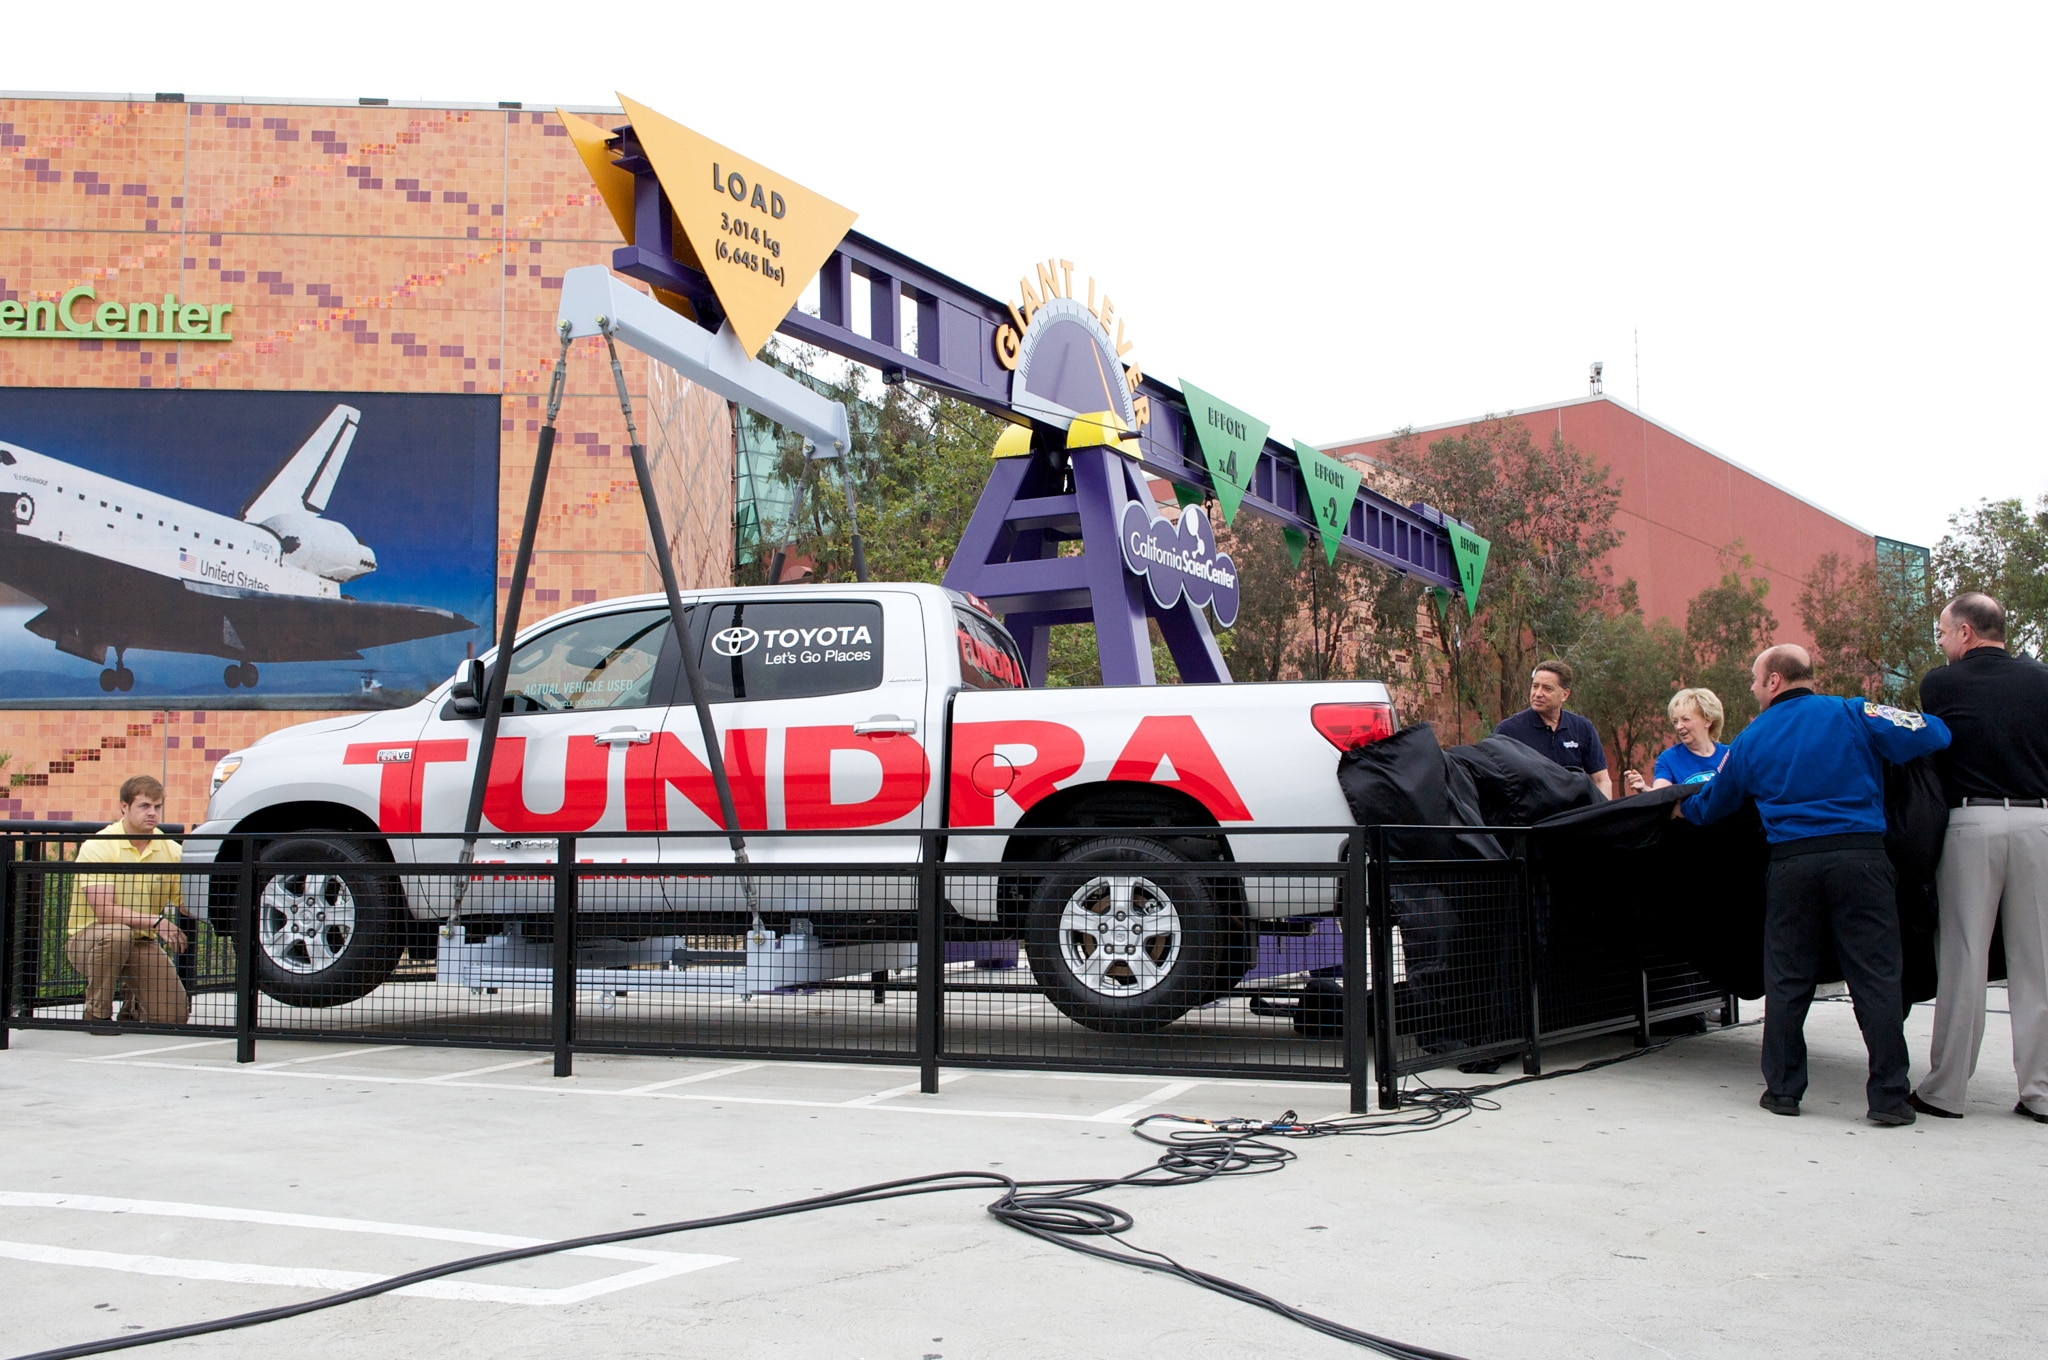 Toyota Tundra Eneavour Tow Truck Now Part of Science Display